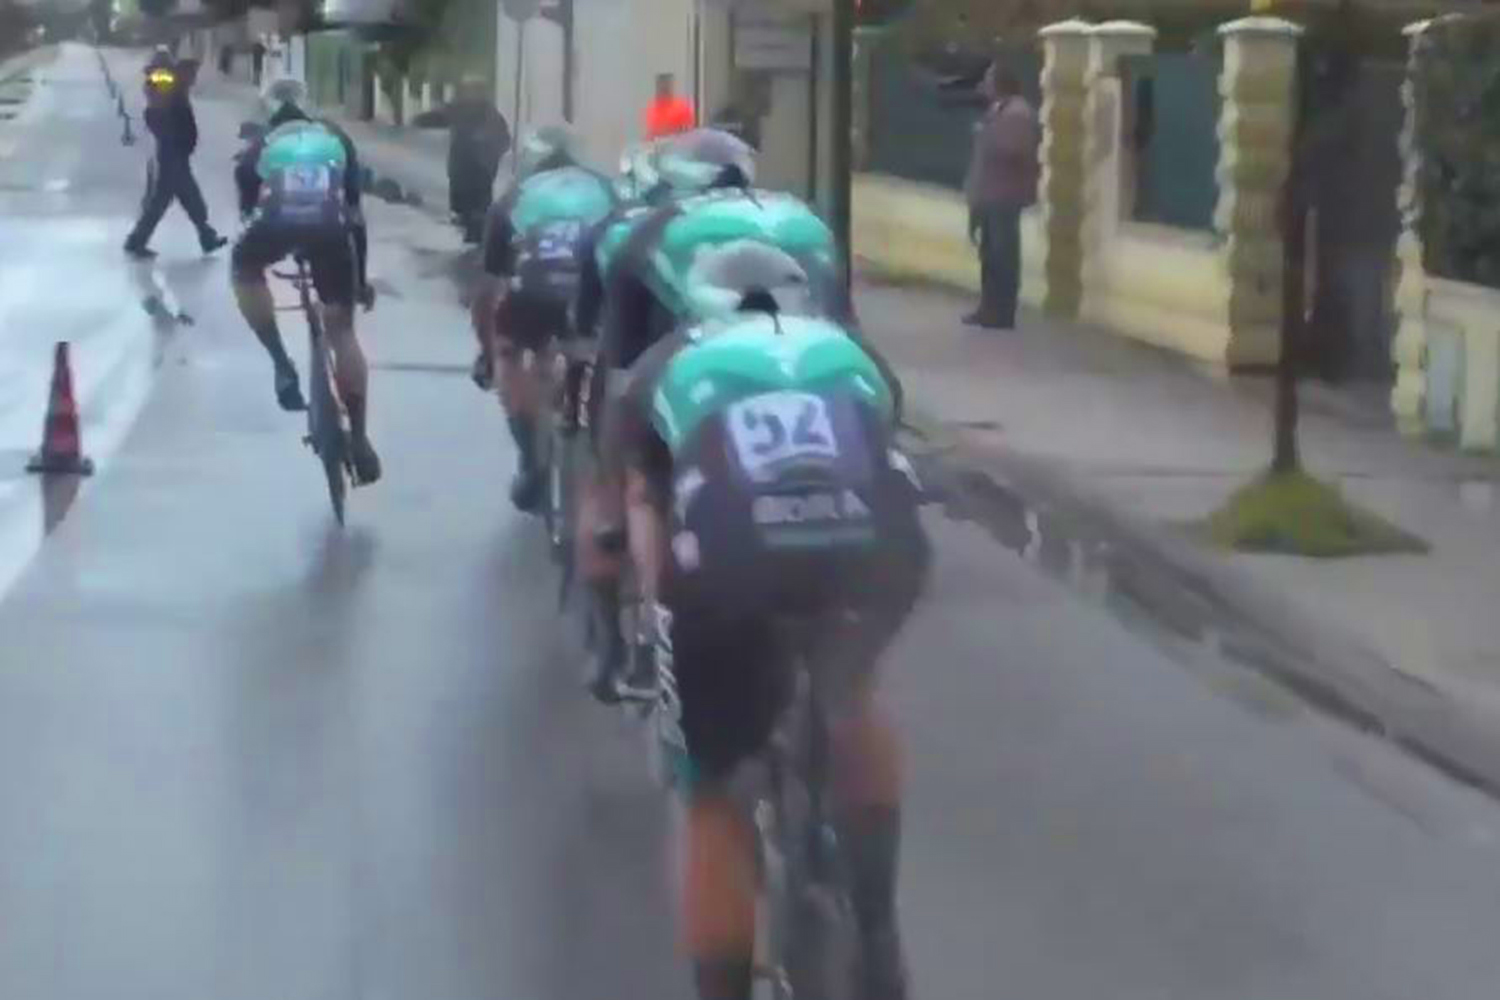 The riders were going at high speed on wet roads